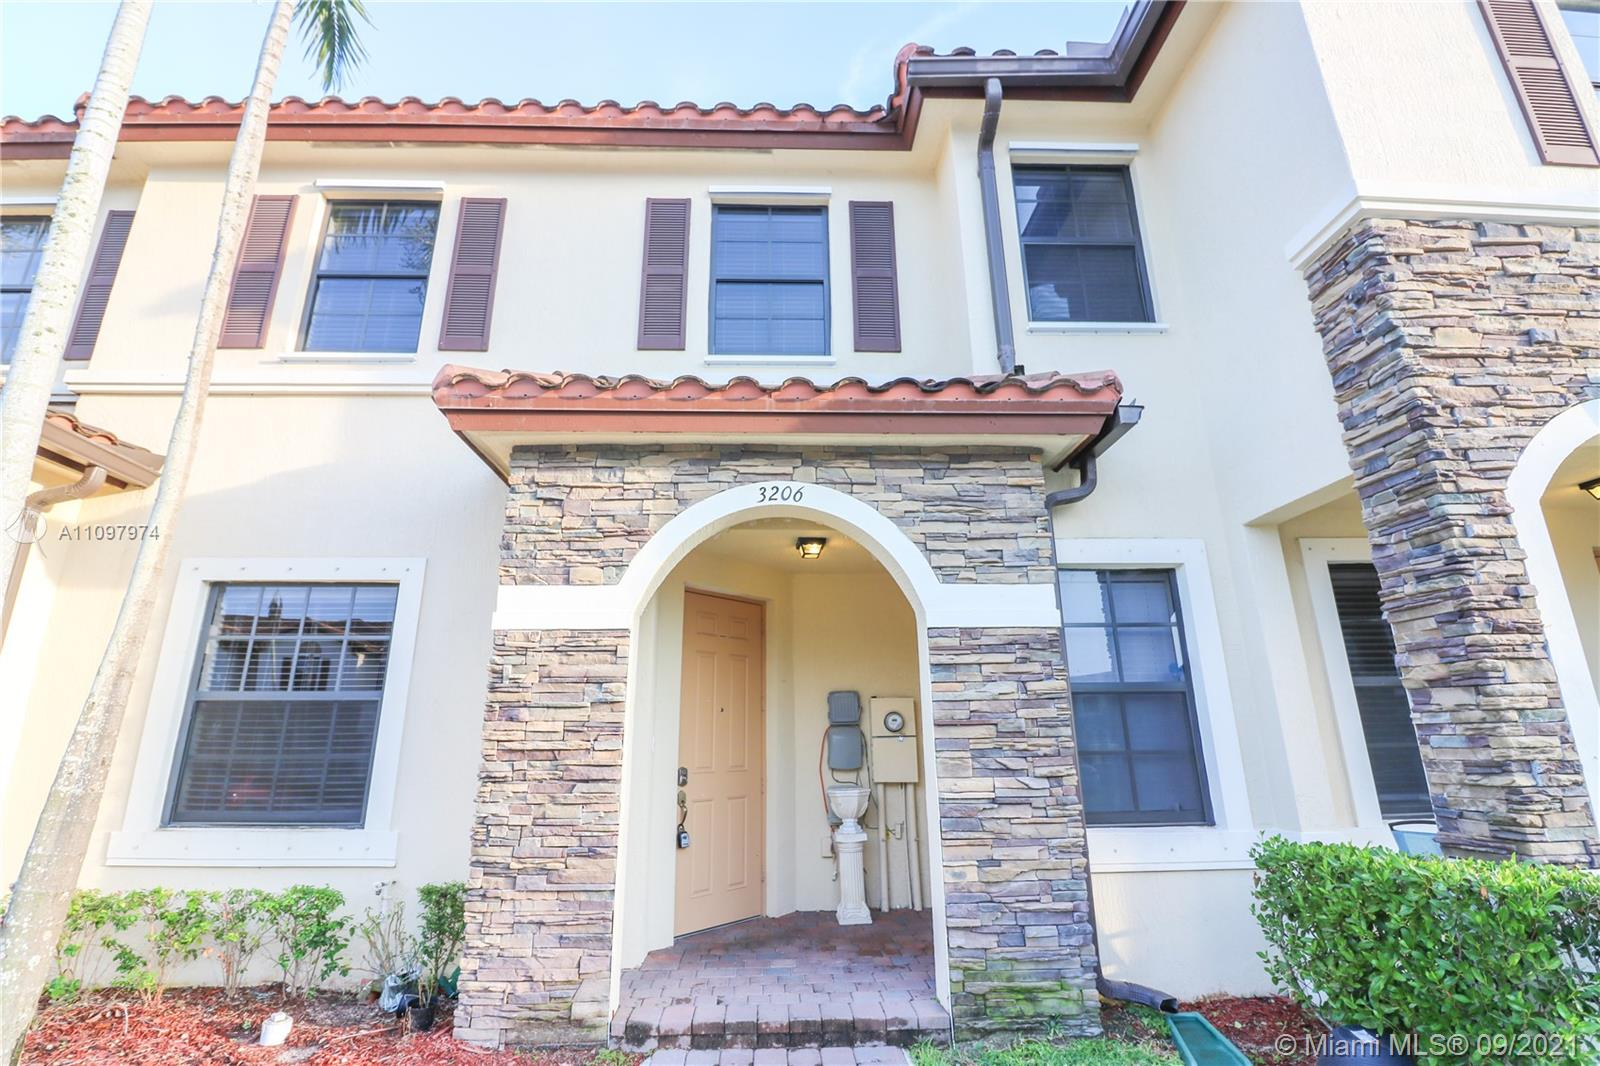 MUST SEE - Centrally located 3 bedroom, 2.5 bathroom townhouse unit in the heart of Homestead. Within close proximity to the Florida Turnpike and most of the commercial areas. Unit has only had one previous tenant and it is in immaculate conditions. Unit has its own patio for additional entertaining. Outside closet space provides additional storage. Association has community pool and amenities. Situated in the Martinique community. Property professionally leased and managed by Management Miami. Hurry - Won't last!